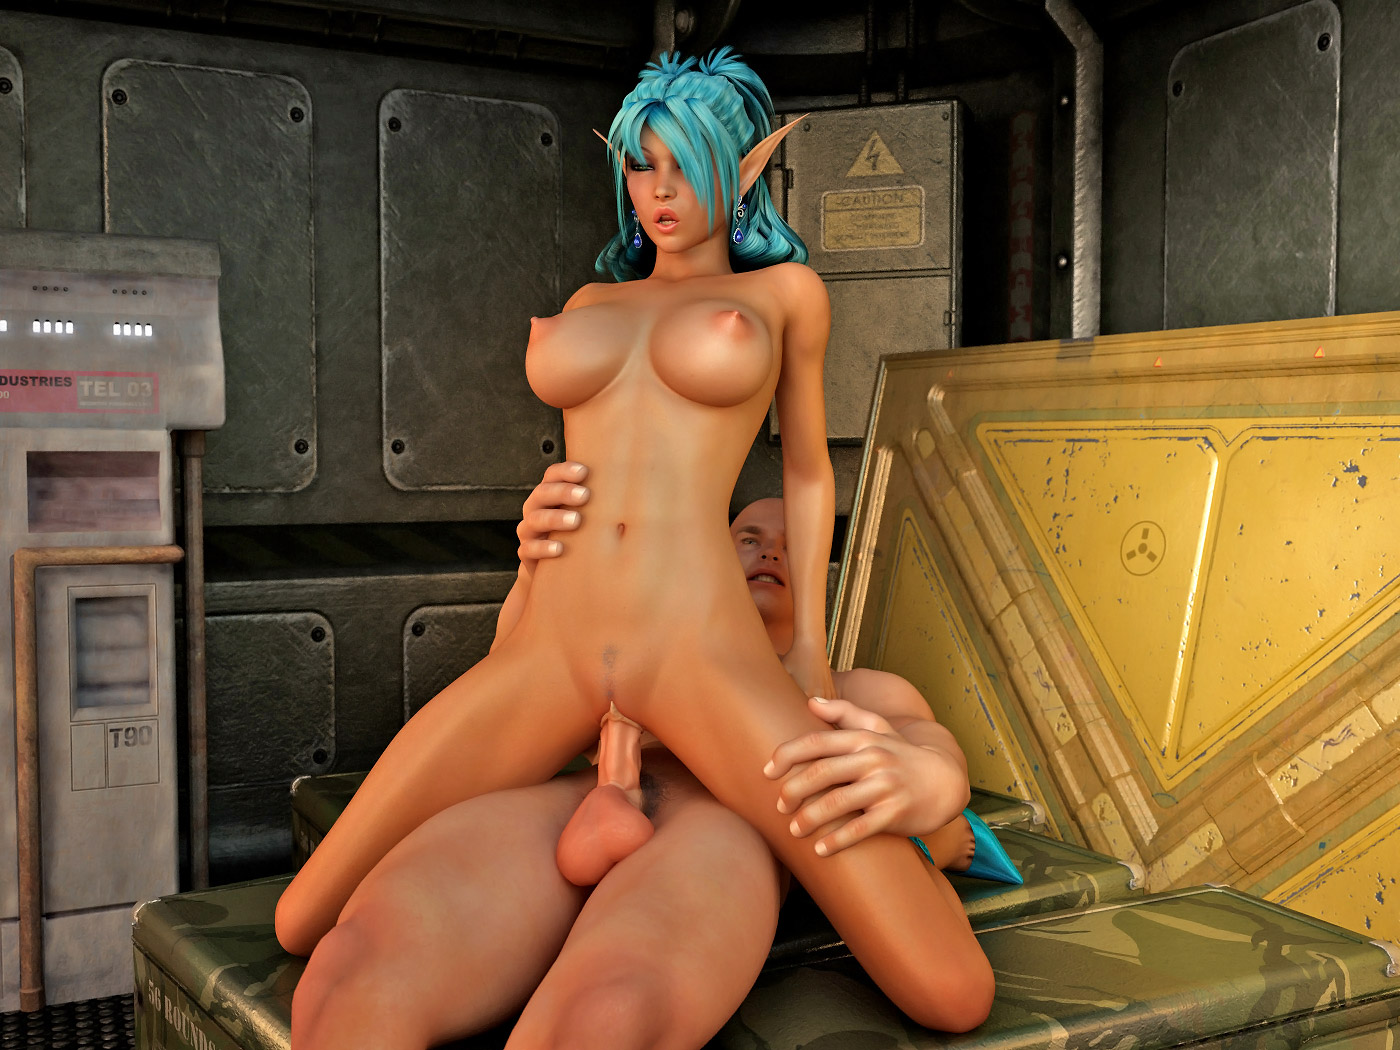 Elf porno photo free porn streaming